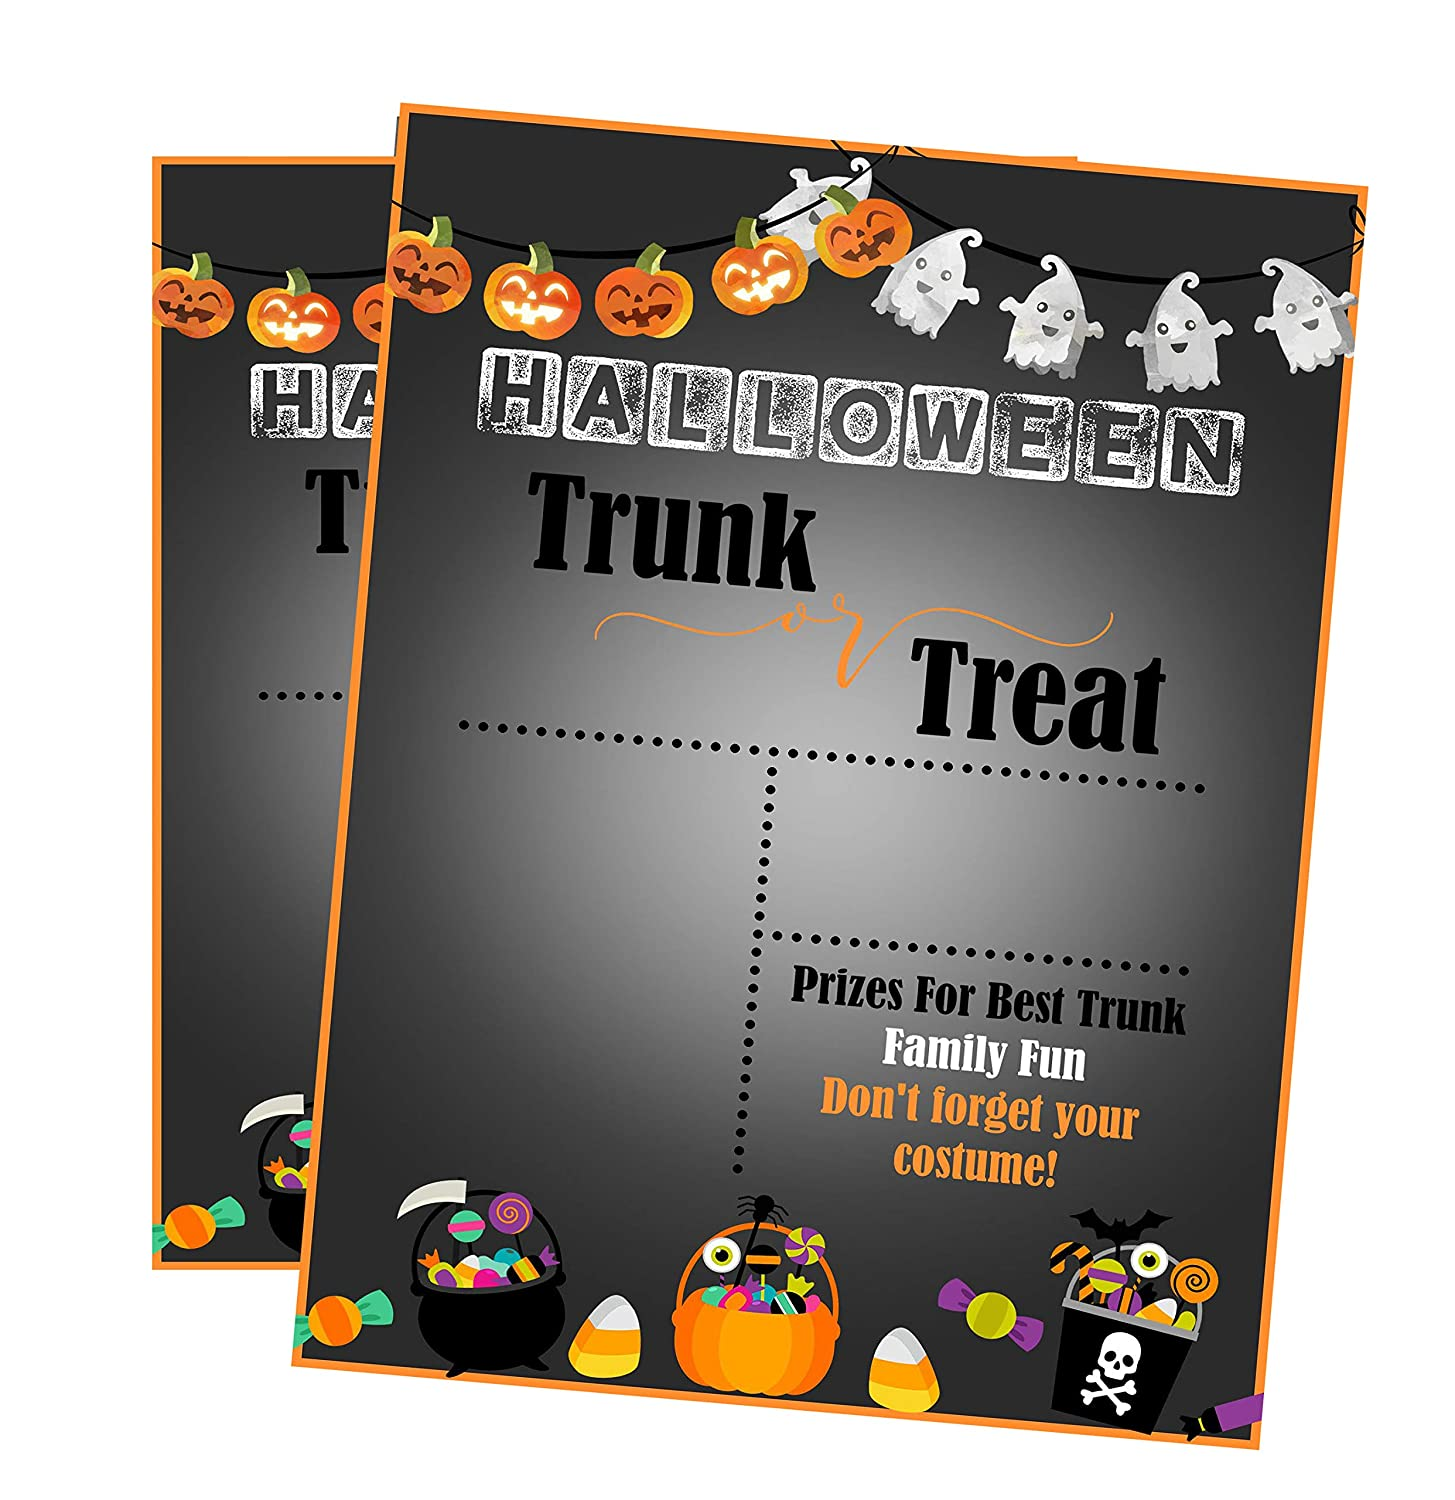 Amazon.com: Silly Goose Gifts Halloween Trunk Or Treat ~ Trick Or ...